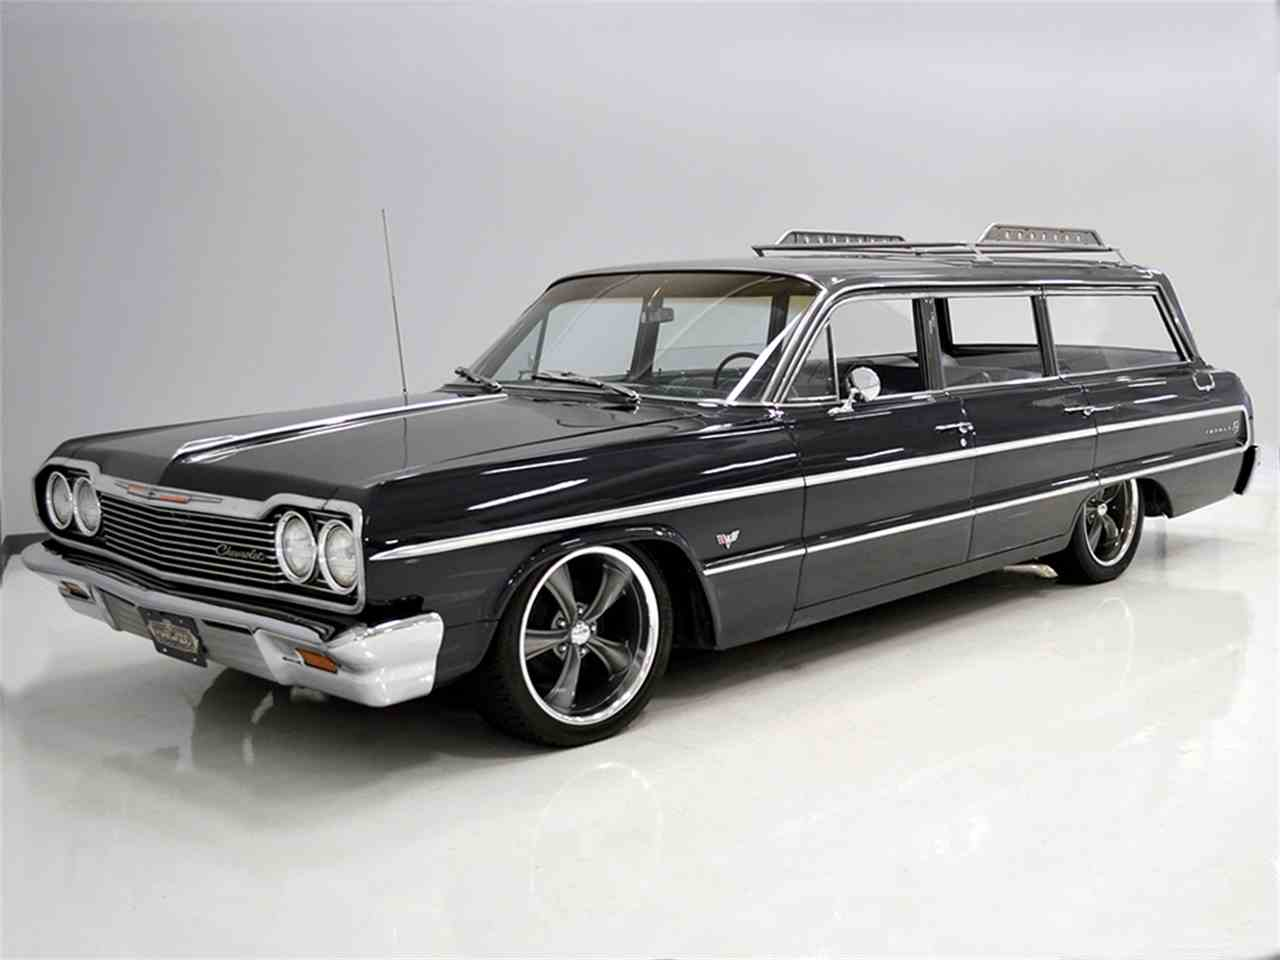 Large Picture of '64 Impala Offered by Harwood Motors, LTD. - LEX8